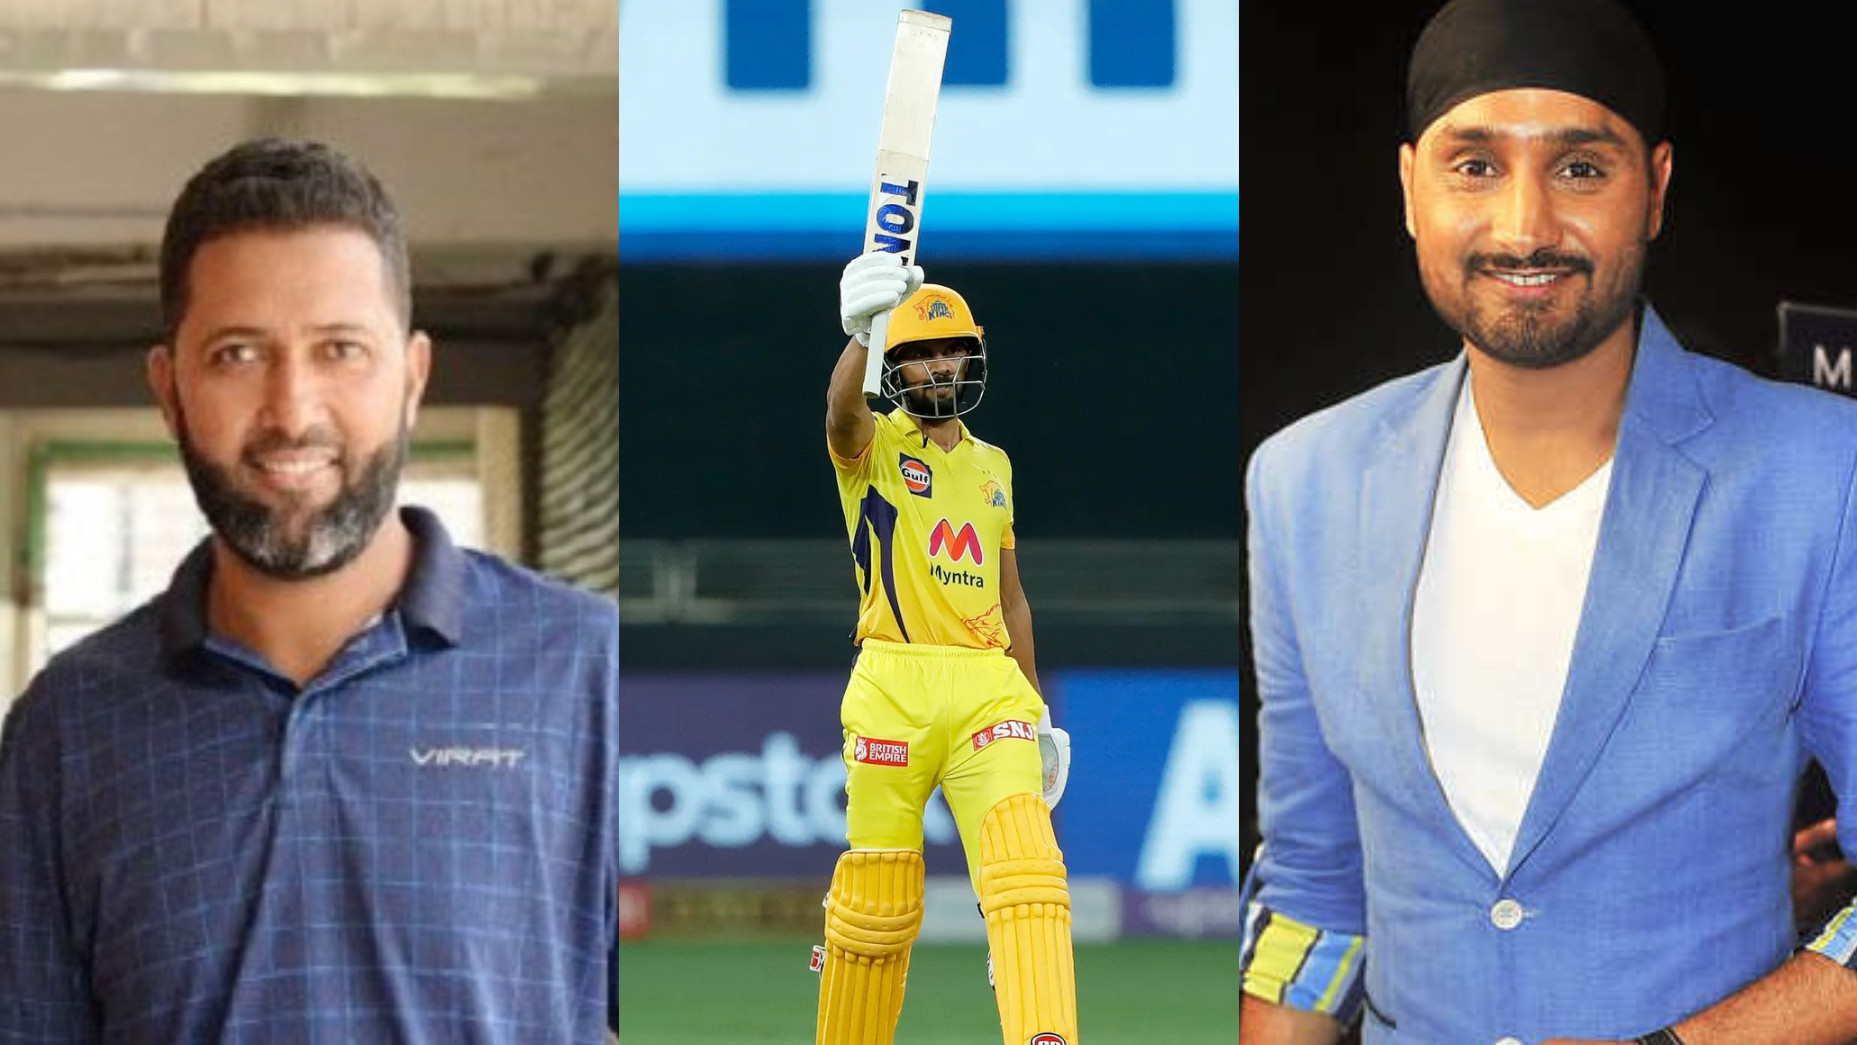 IPL 2021: Cricket fraternity reacts as Ruturaj Gaikwad's amazing 88* powers CSK to 156/6 against MI